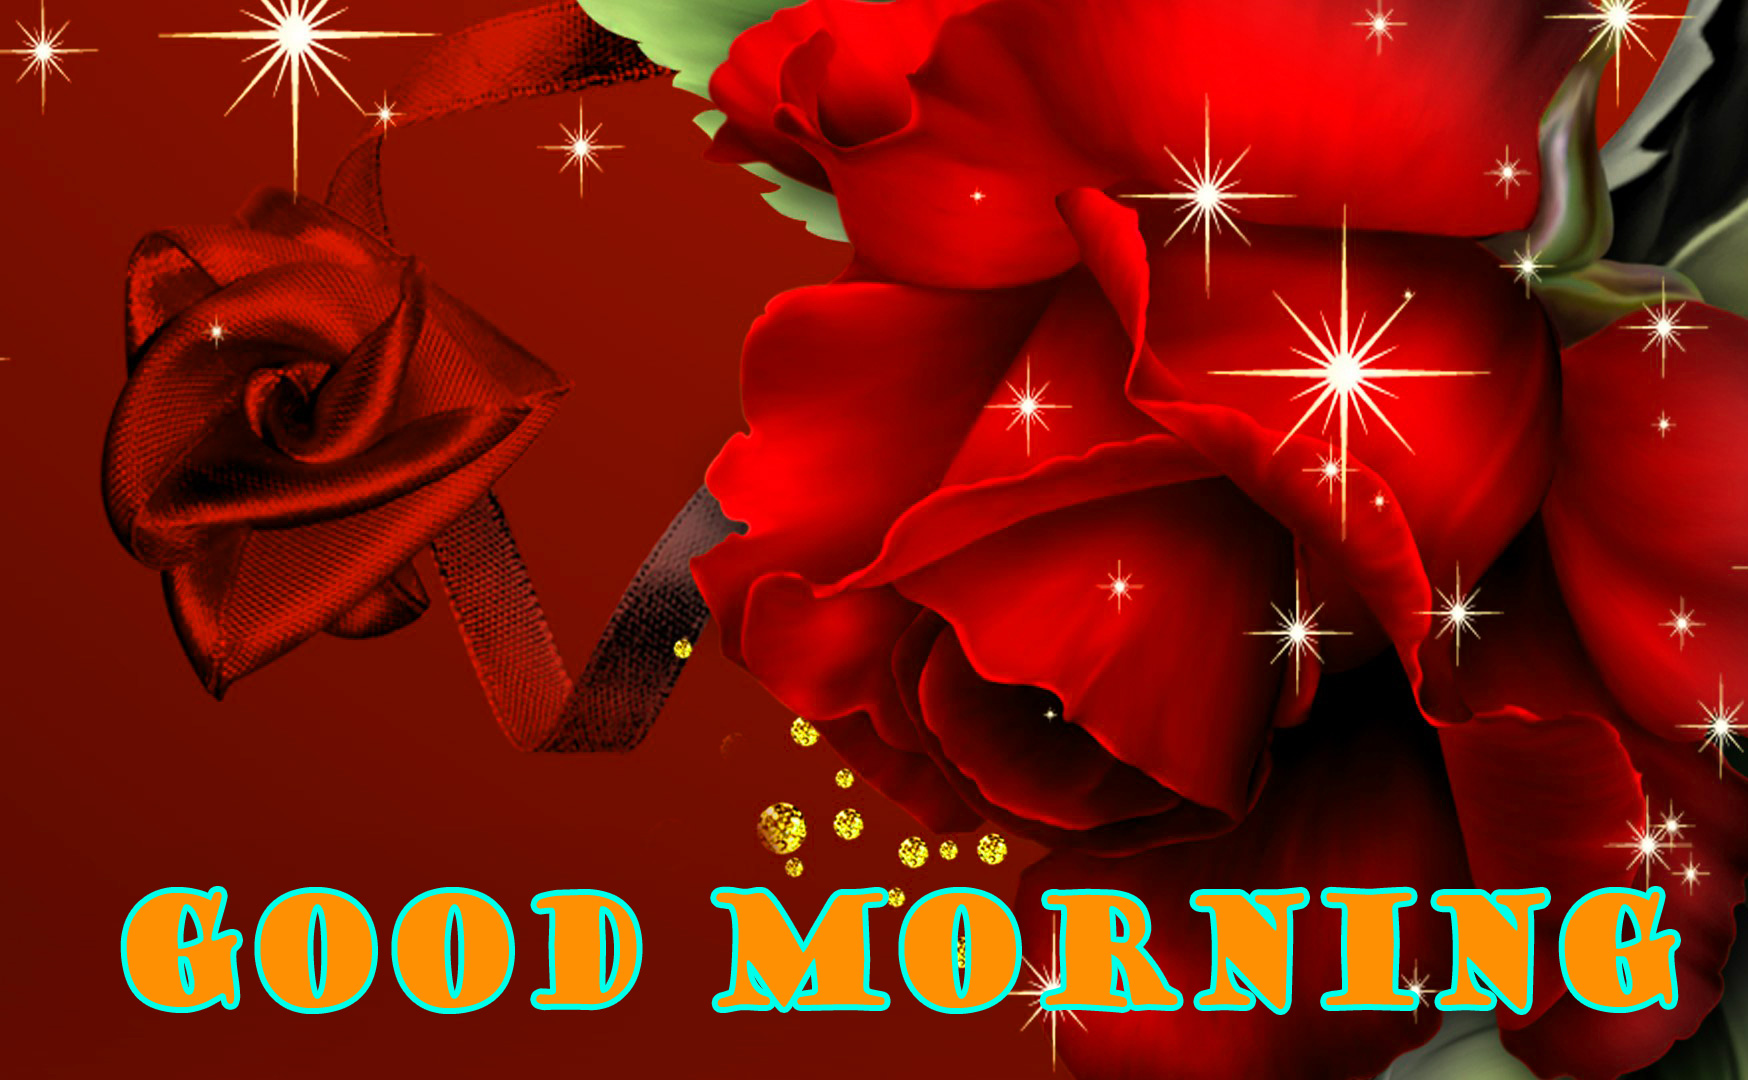 Good Morning Red Rose Photo Images For Whatsapp